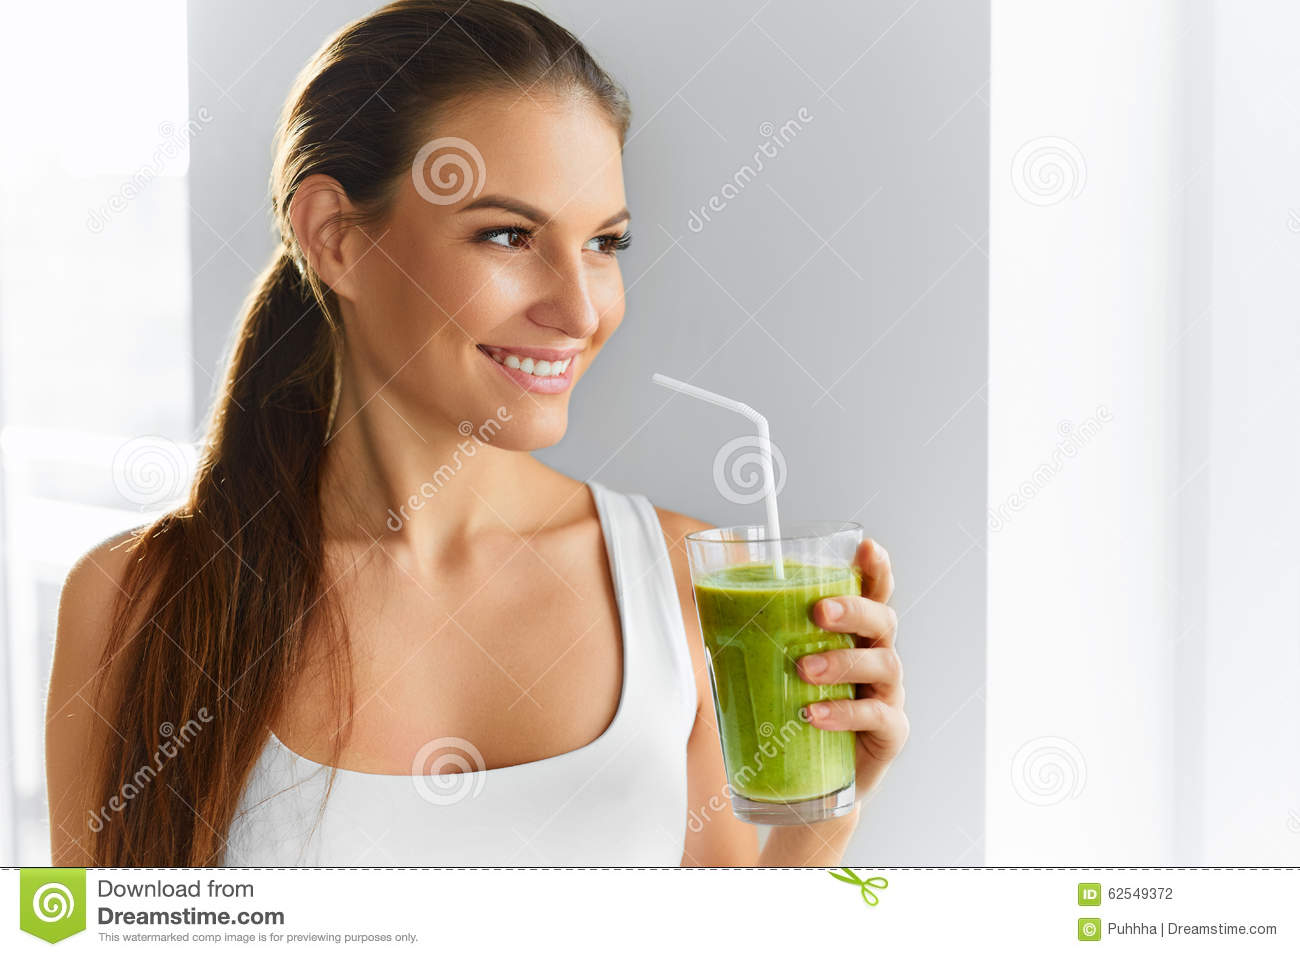 Diet. Healthy Eating Woman Drinking Juice. Lifestyle, Food. Nutrition Drinks.